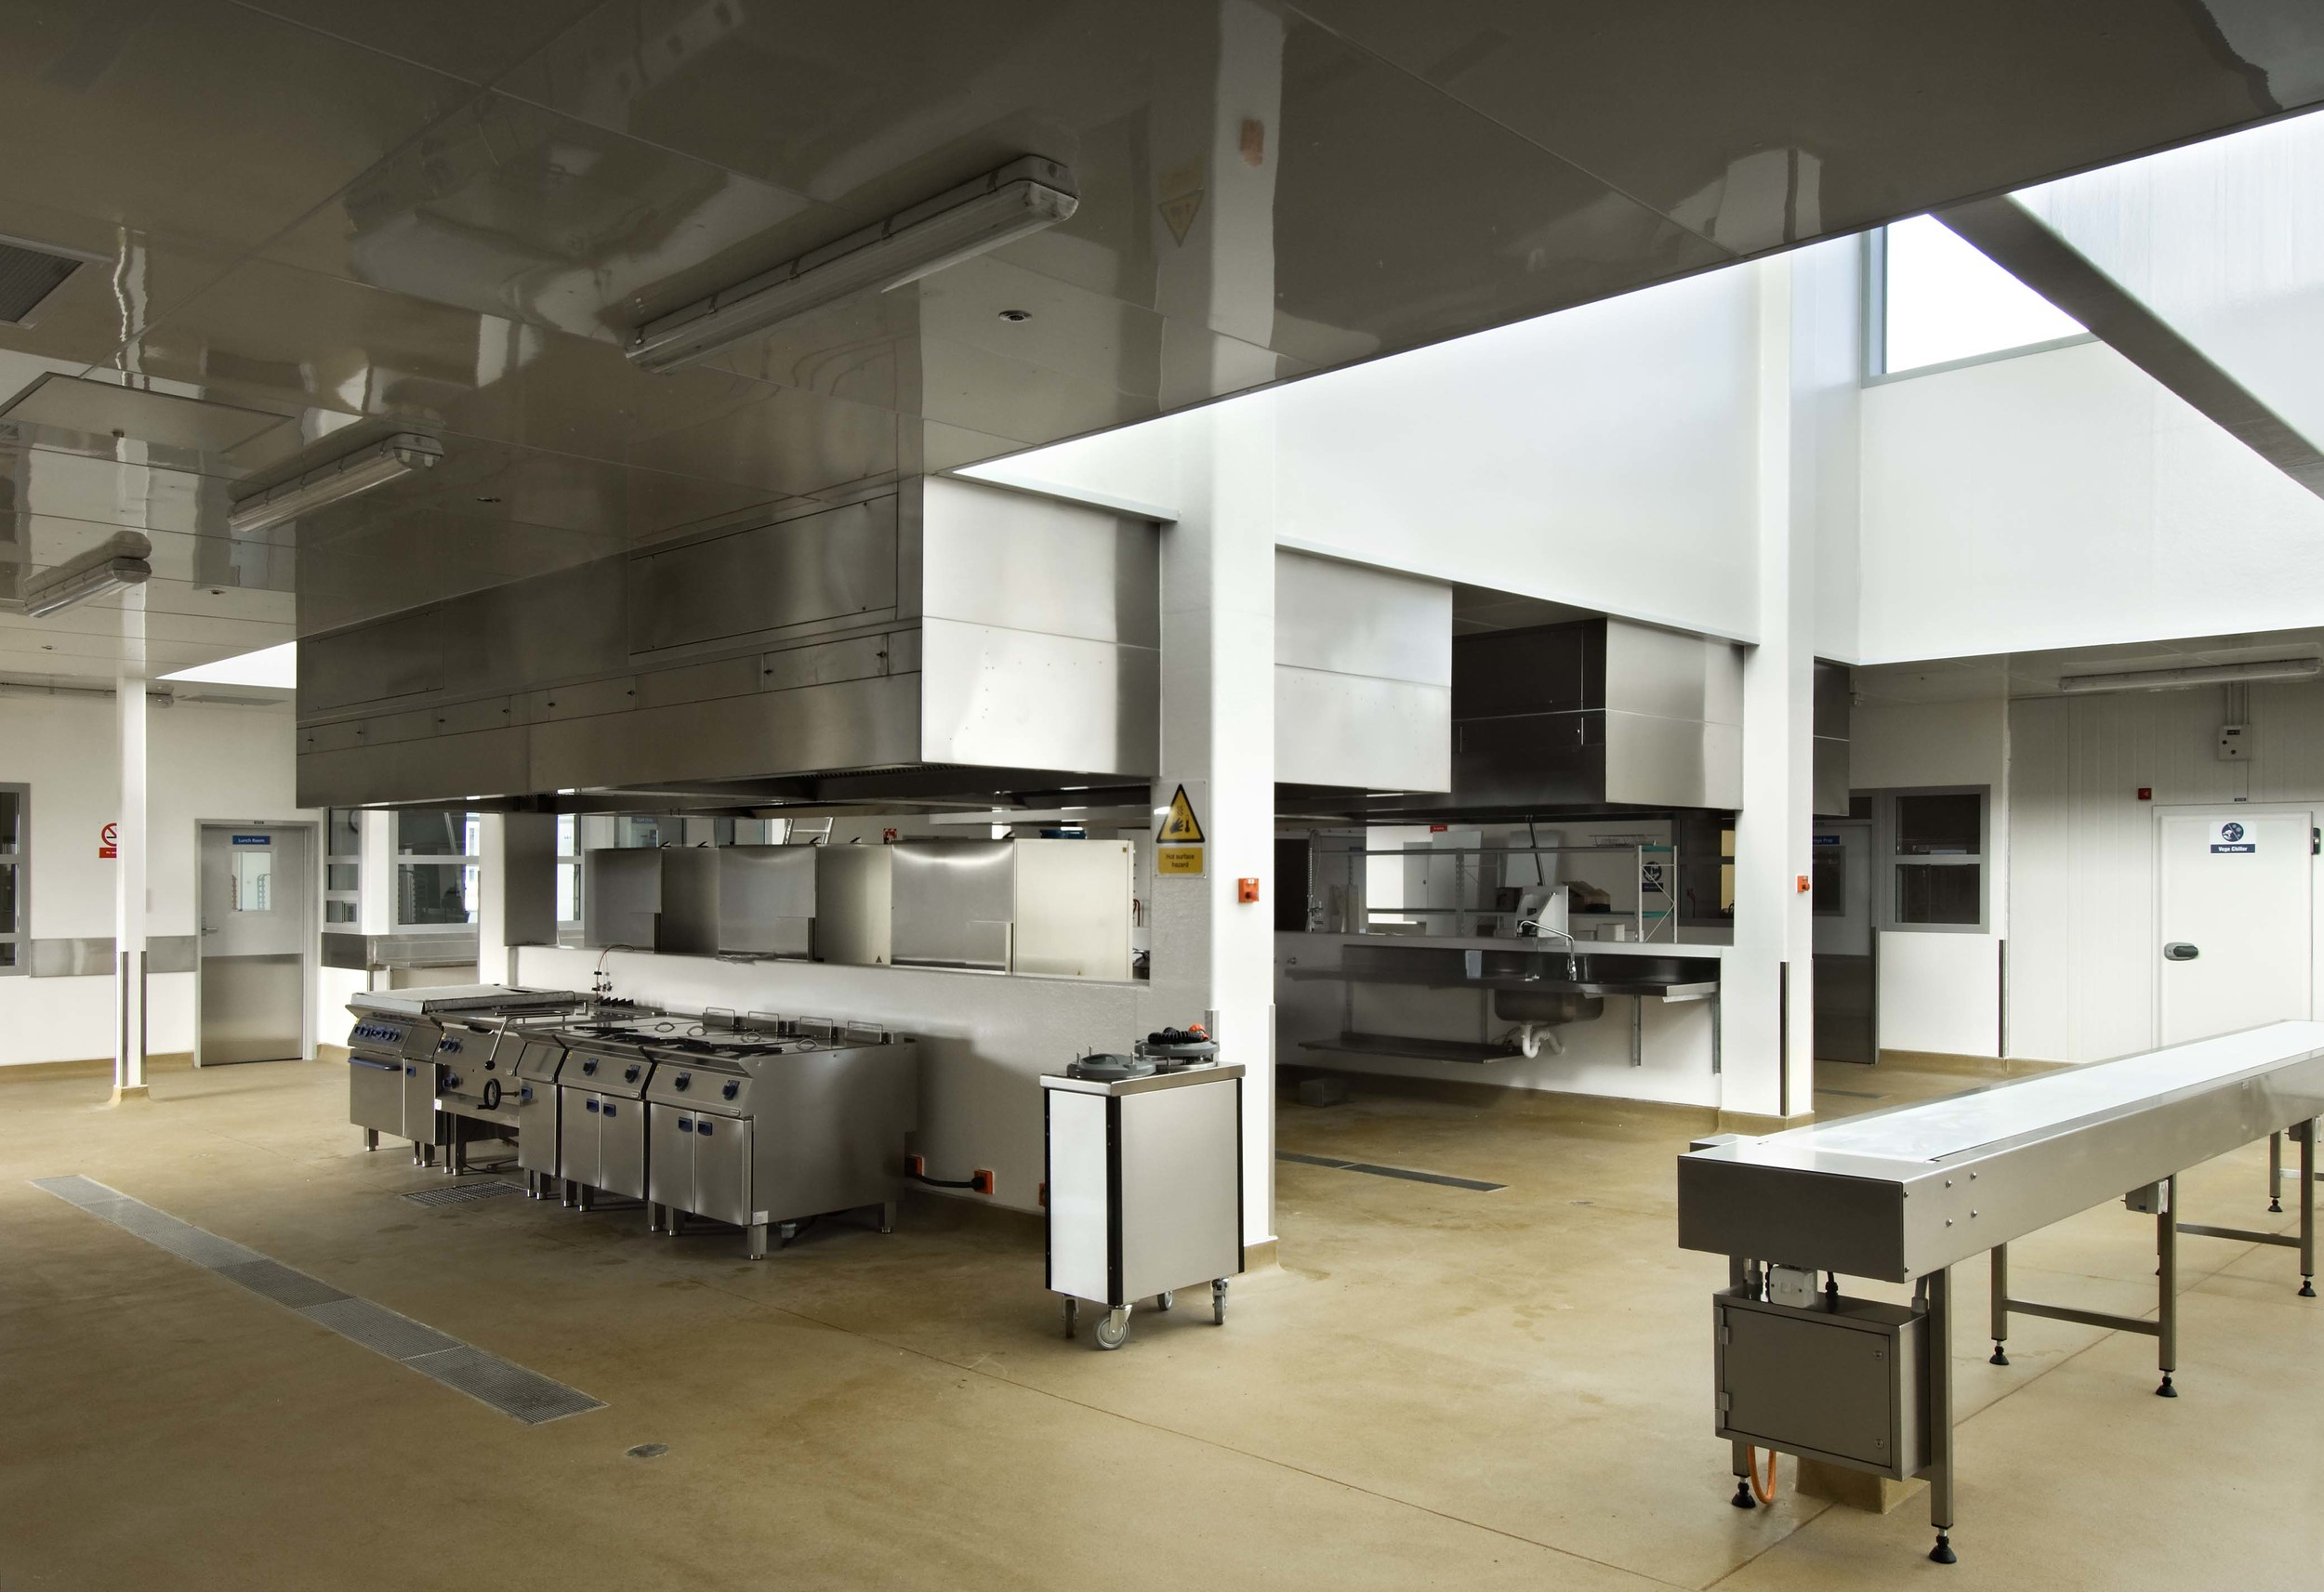 SpringHillCF_Interior_Kitchen_02.jpg